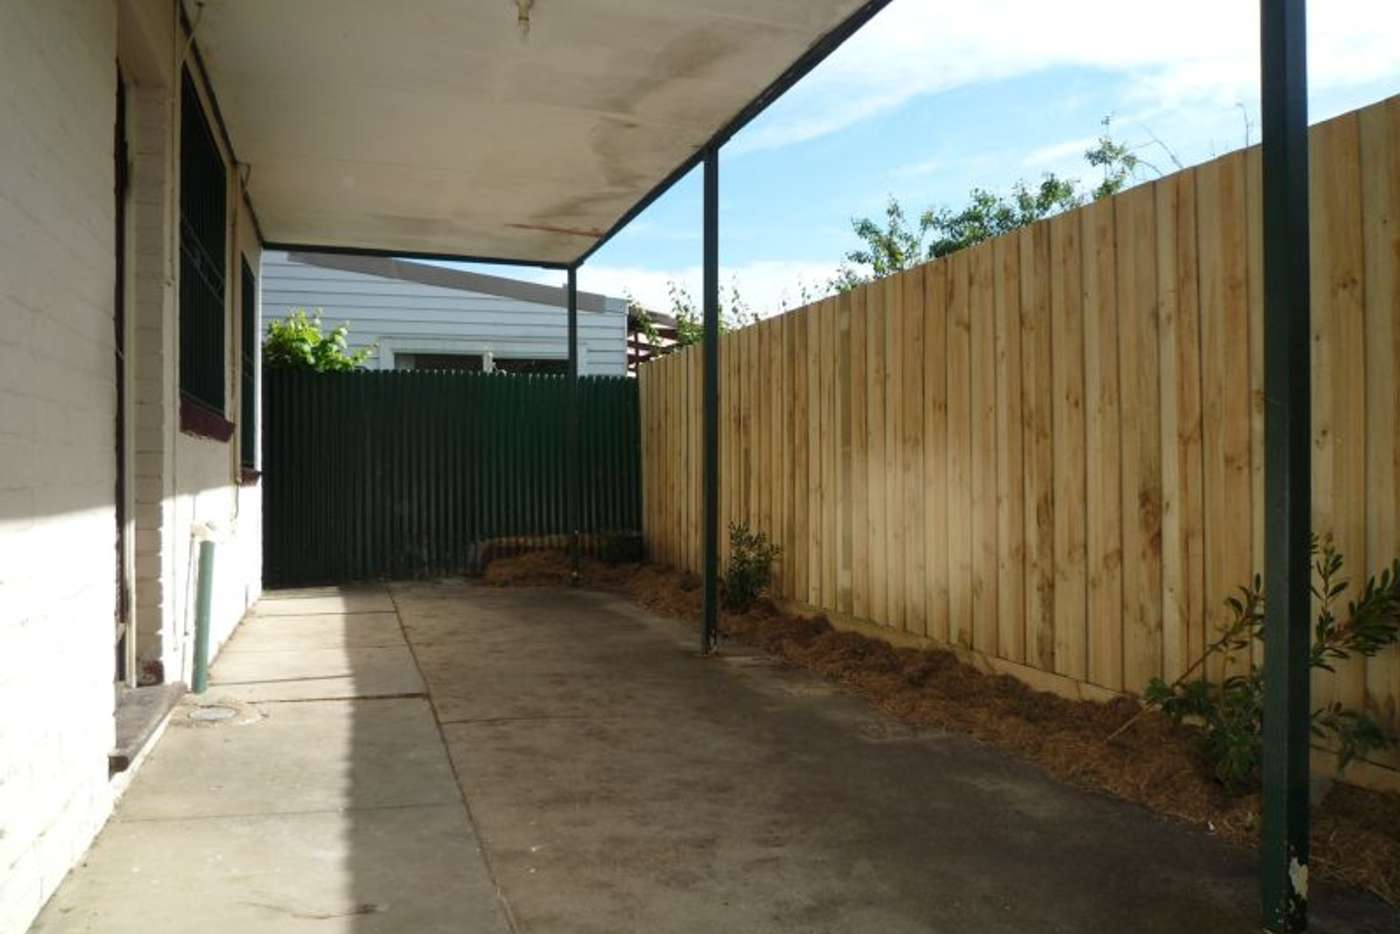 Seventh view of Homely house listing, 29 Nelson Street, Coburg VIC 3058